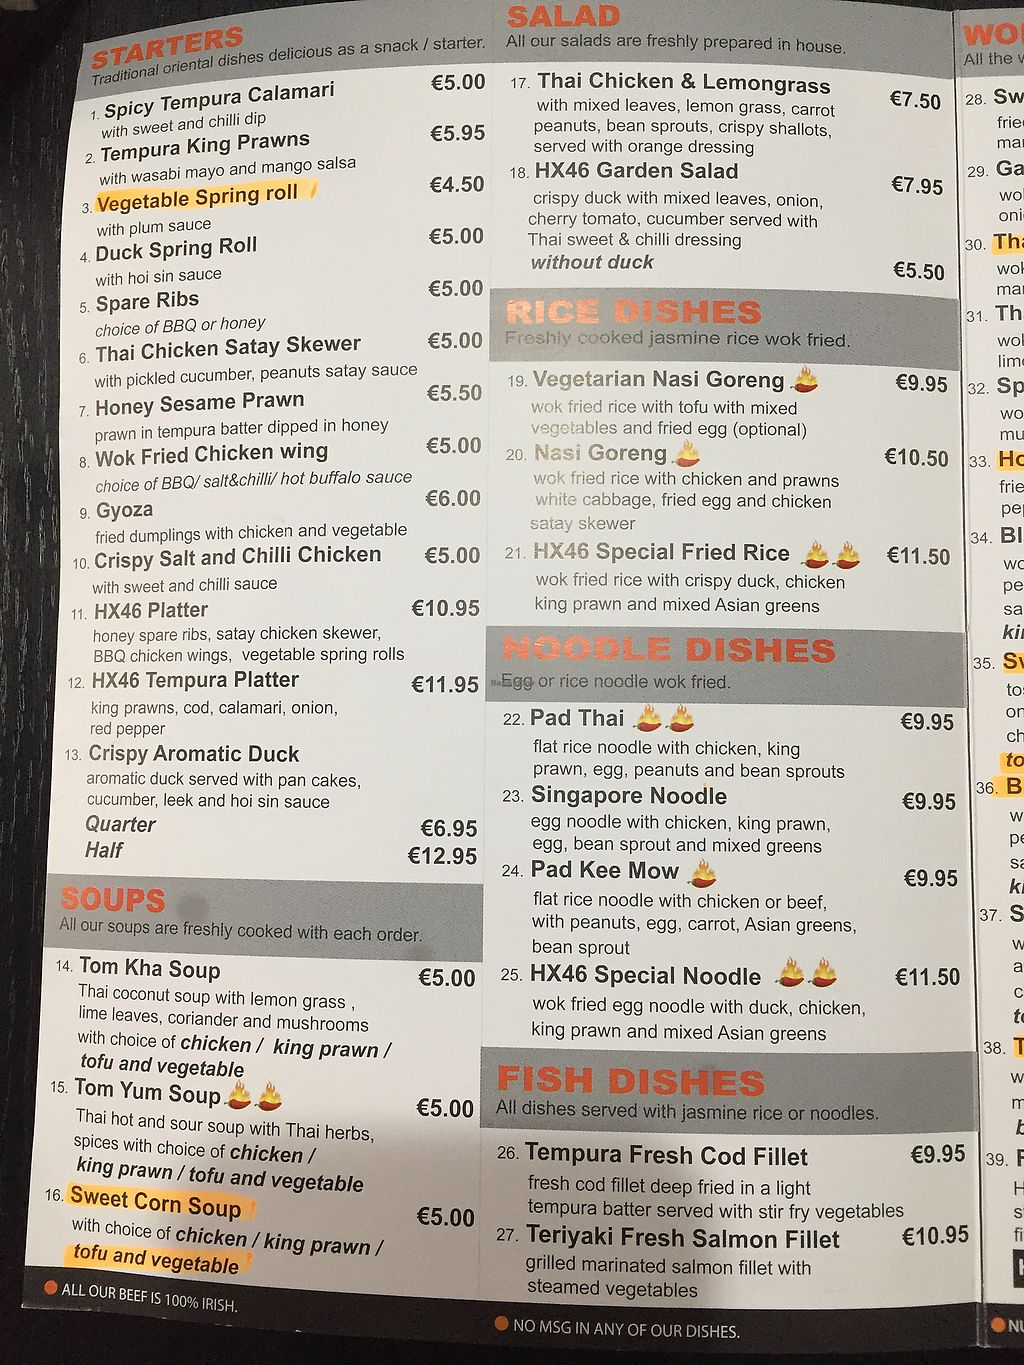 """Photo of Hx46 Cafe  by <a href=""""/members/profile/lmd06"""">lmd06</a> <br/>Menu 1 <br/> September 29, 2017  - <a href='/contact/abuse/image/101903/309651'>Report</a>"""